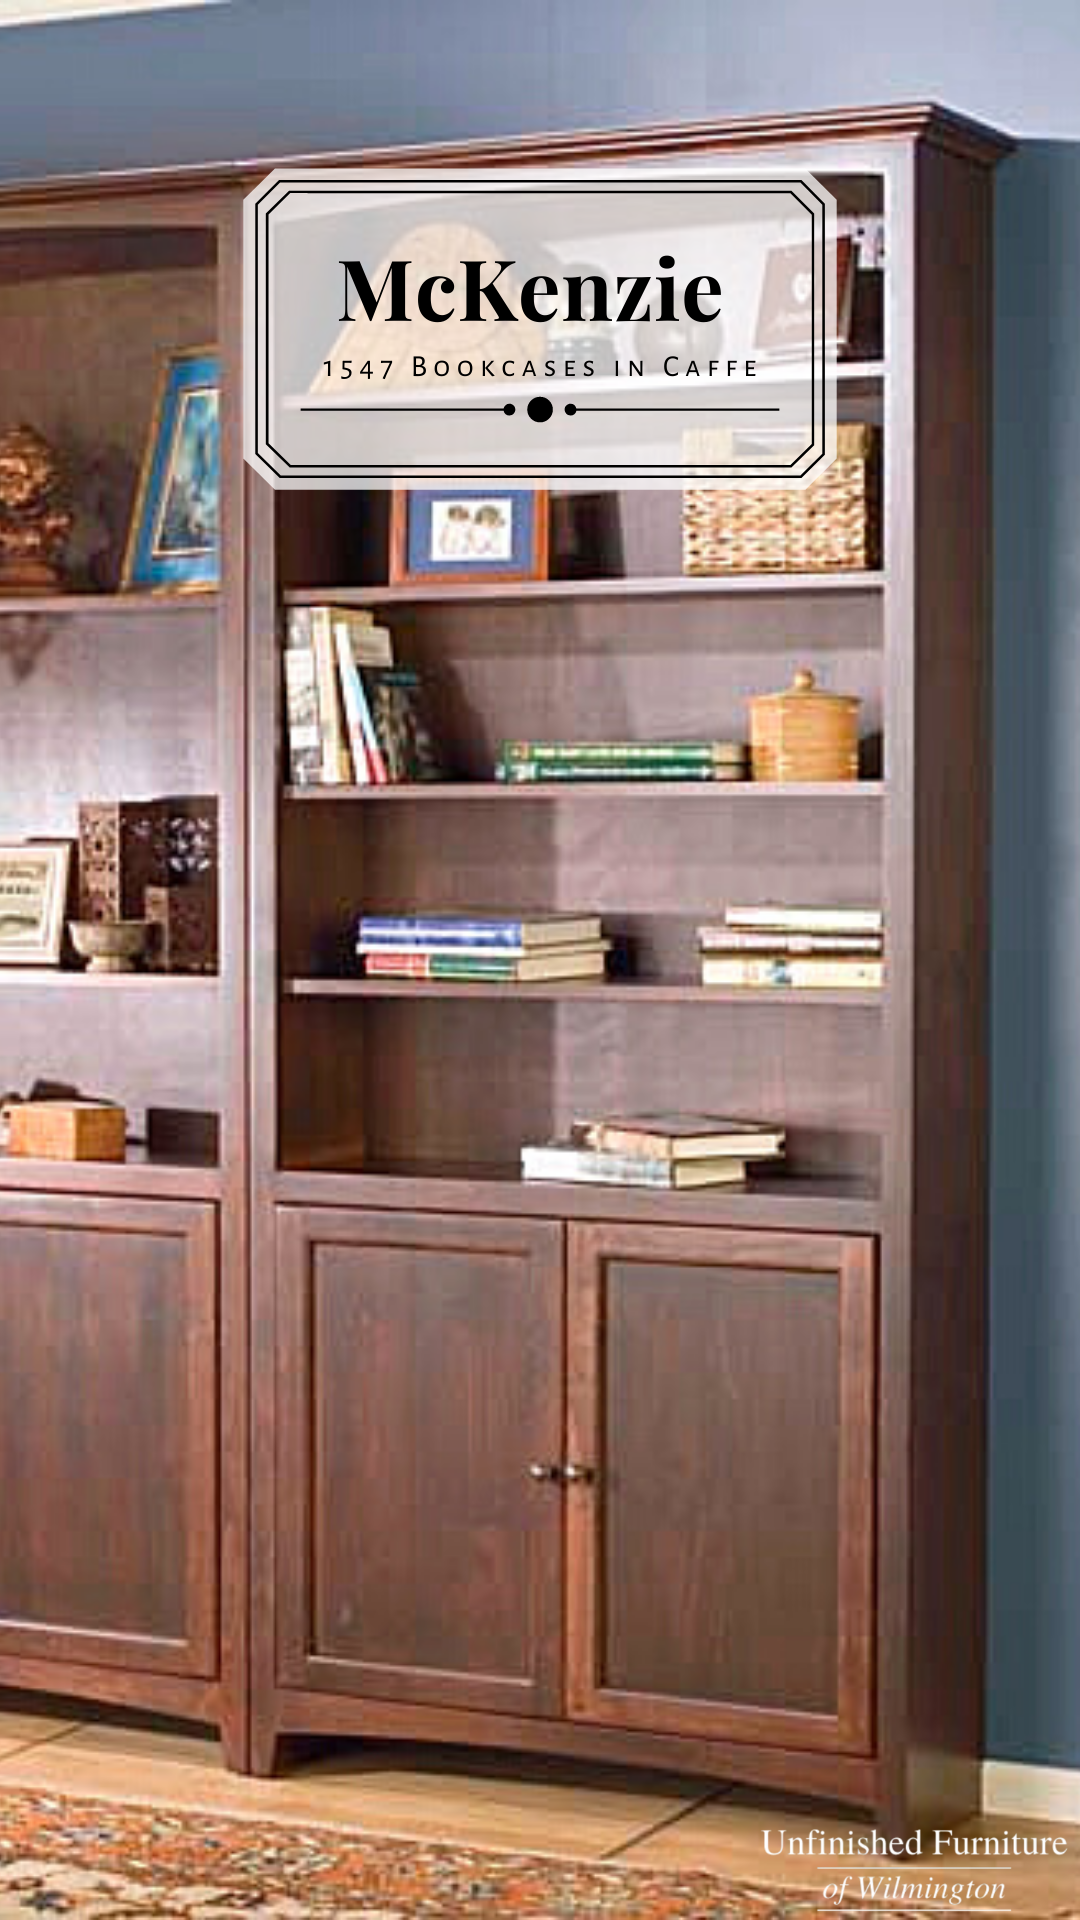 1547 84 X 36 Alder Mckenzie Bookcase With Lower Doors Unfinished Furniture Of Wilmington Unfinished Furniture Bookcase Wood Bookcase